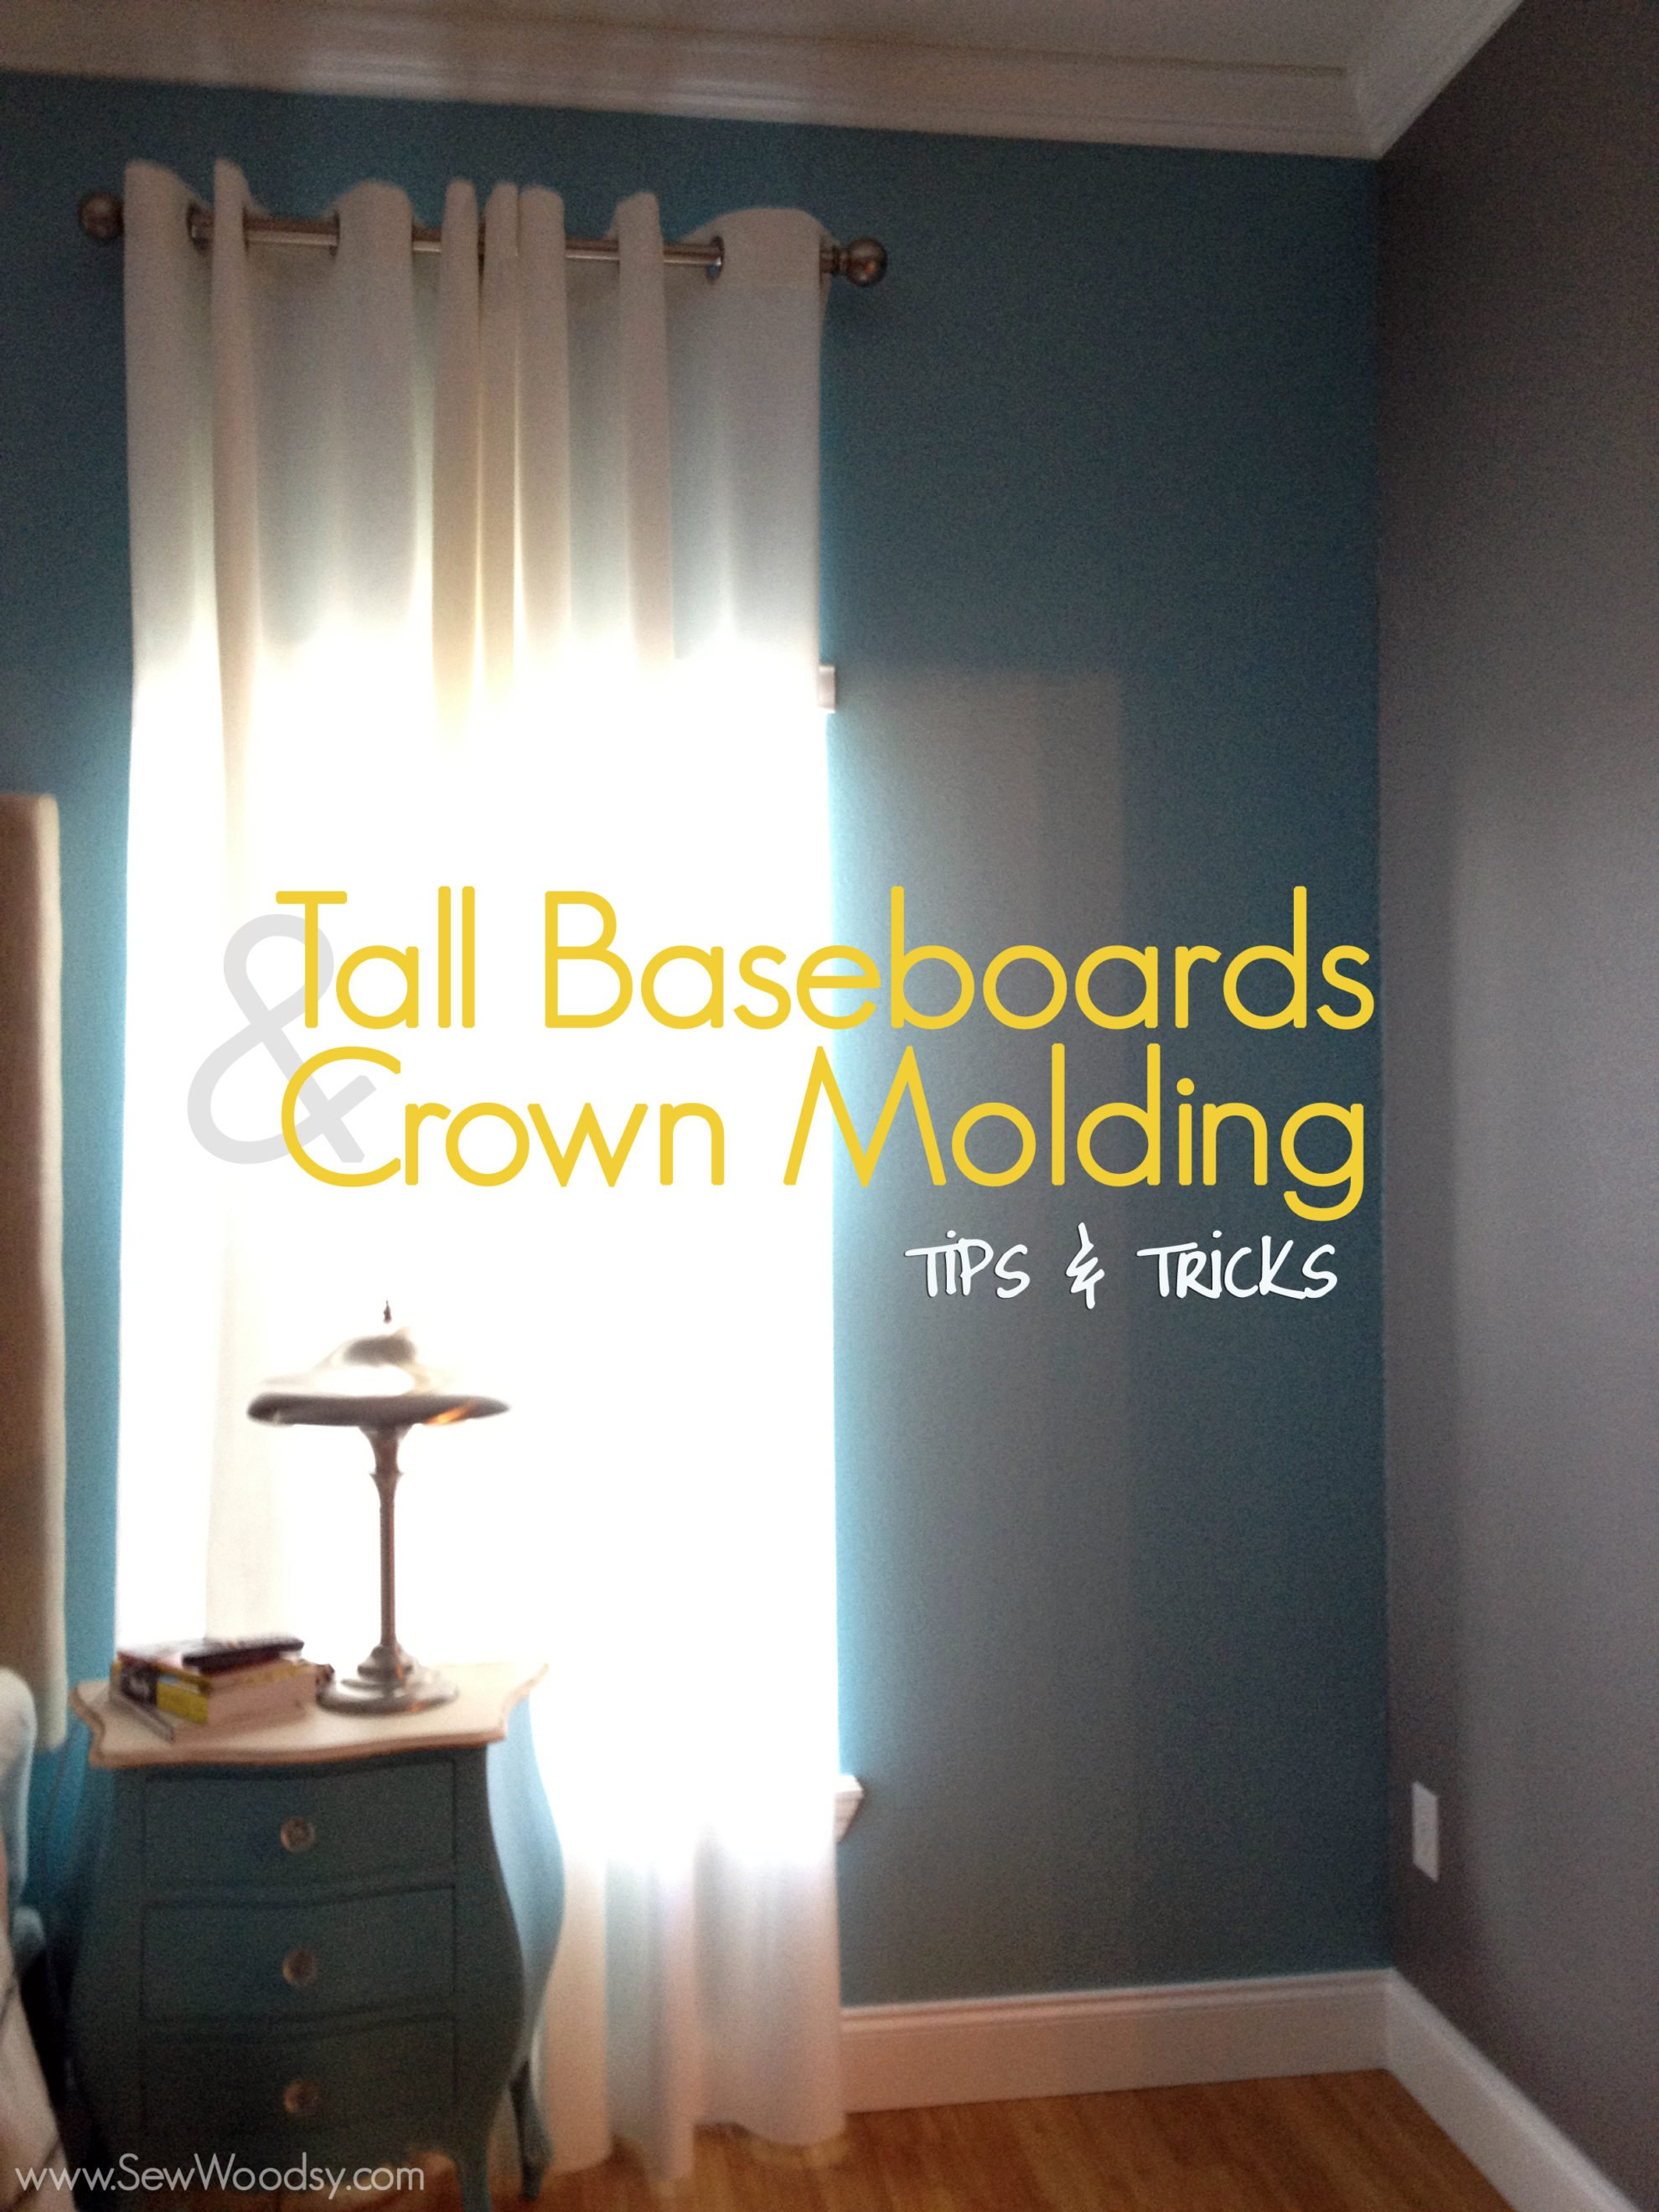 Tall Baseboards amp Crown Molding Tips Tricks Sew Woodsy